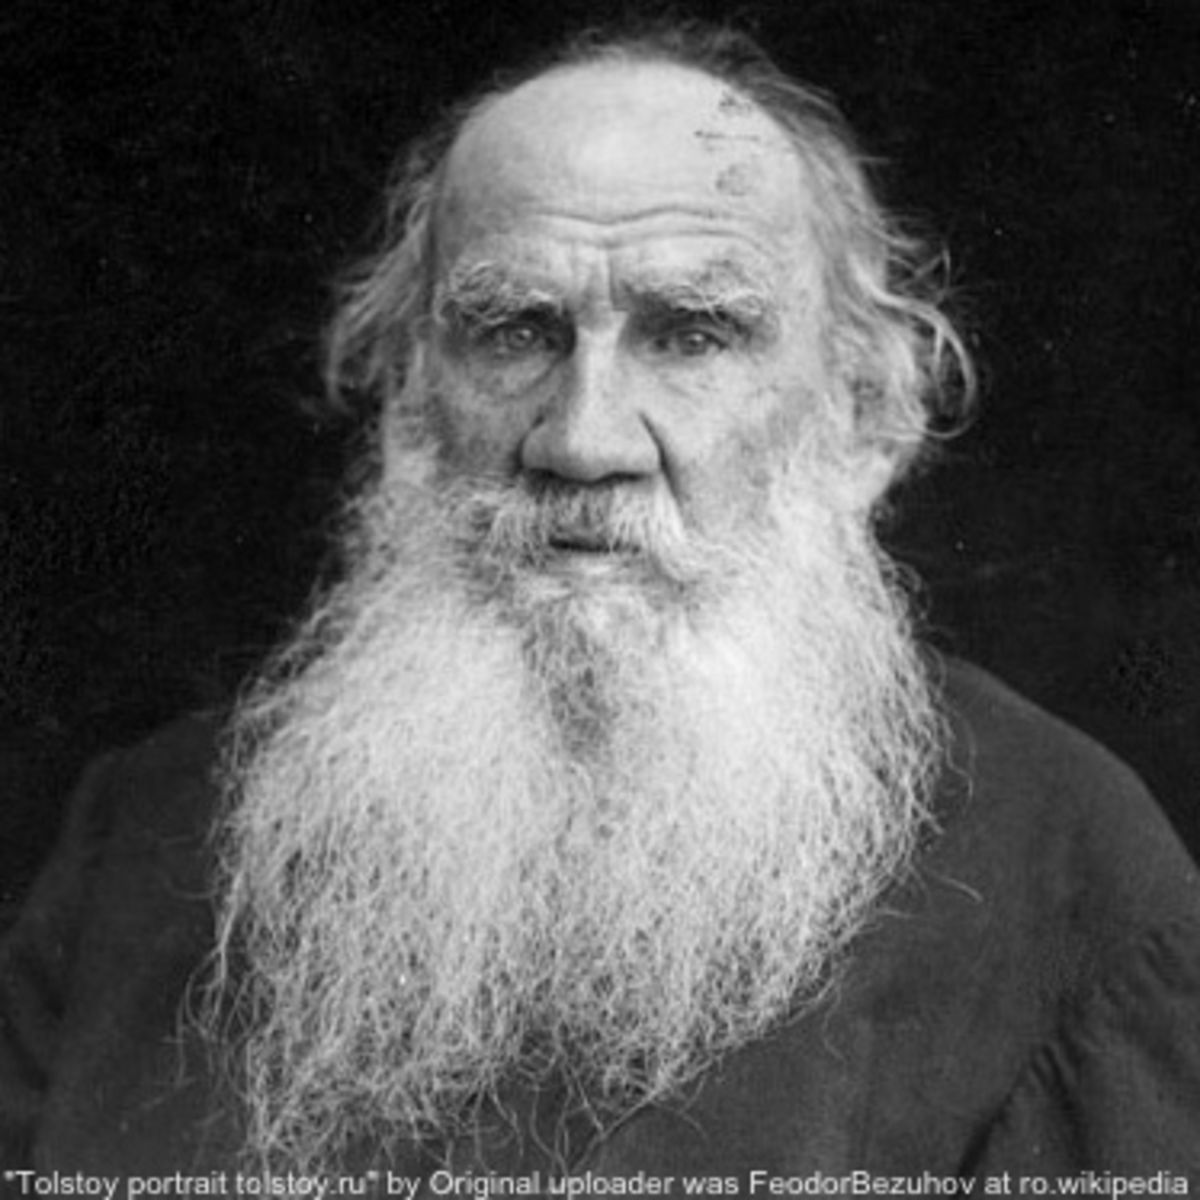 Roman Tolstoy Going Along 79